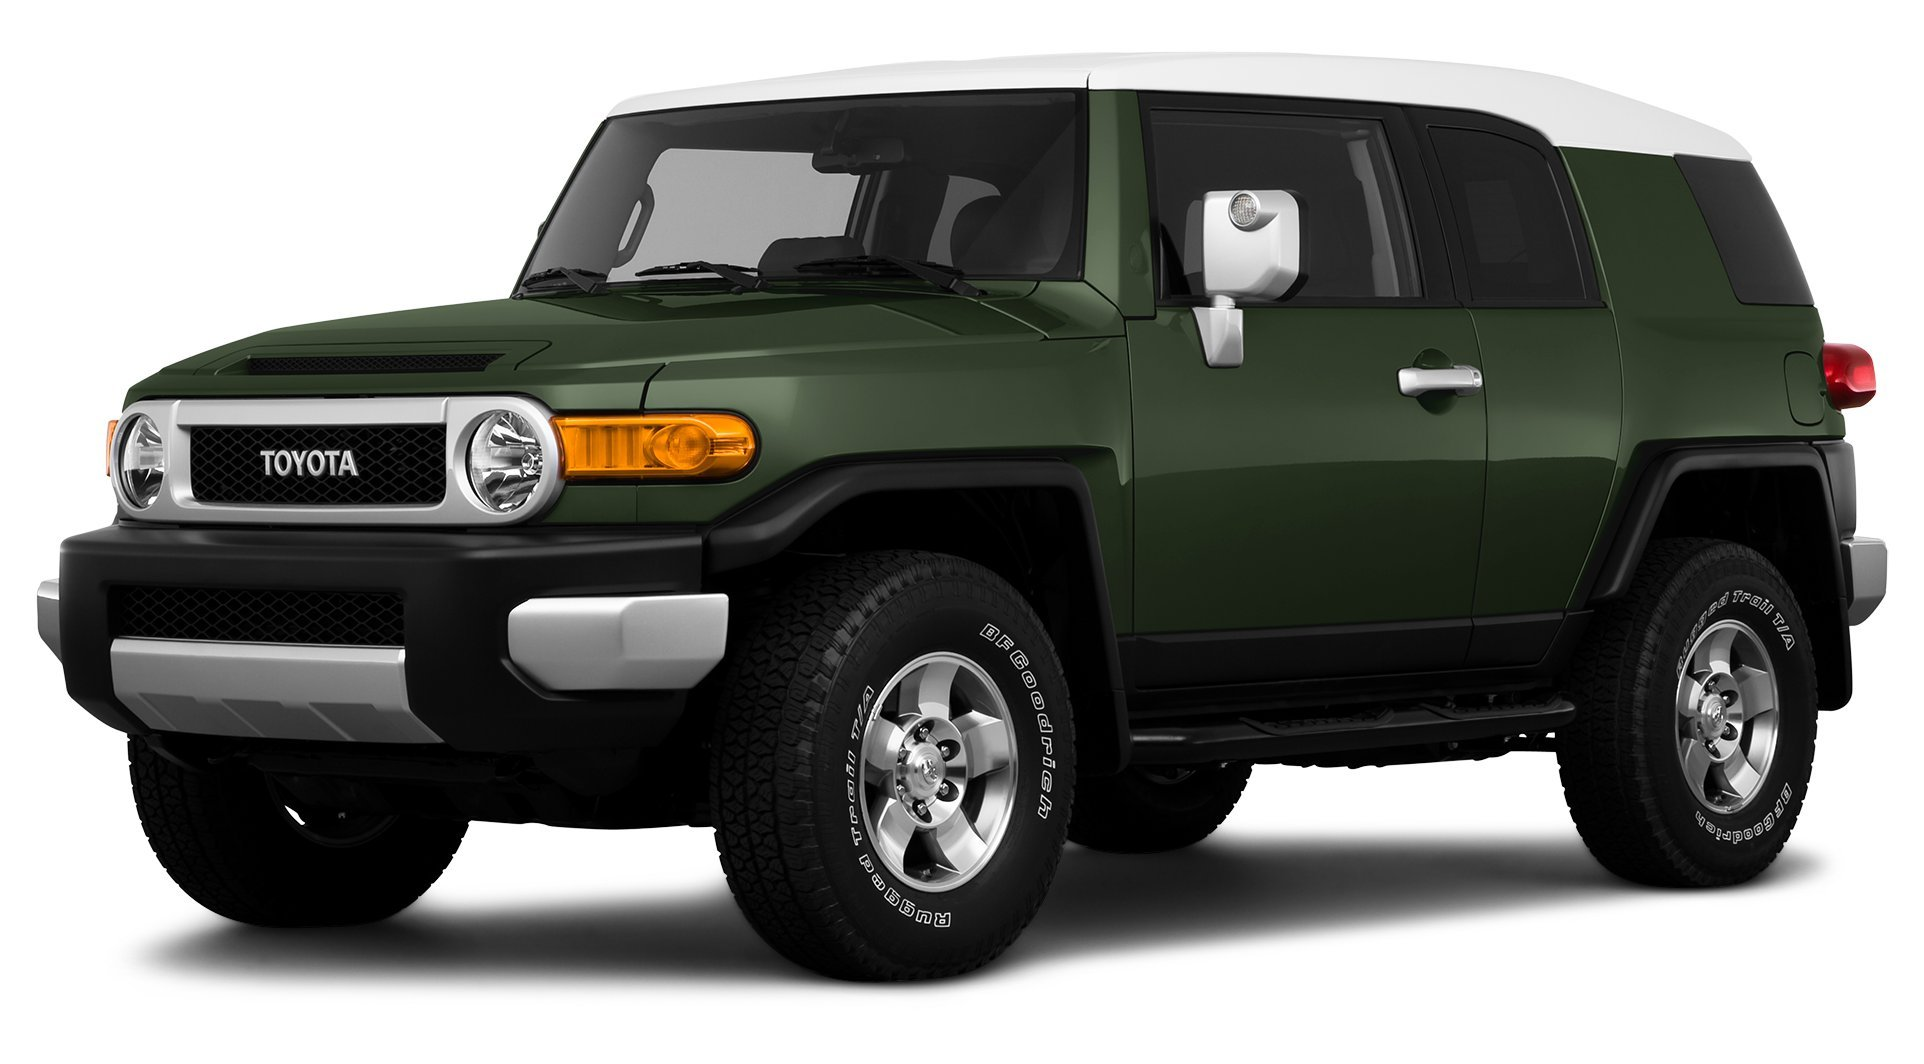 2010 toyota fj cruiser reviews images and. Black Bedroom Furniture Sets. Home Design Ideas